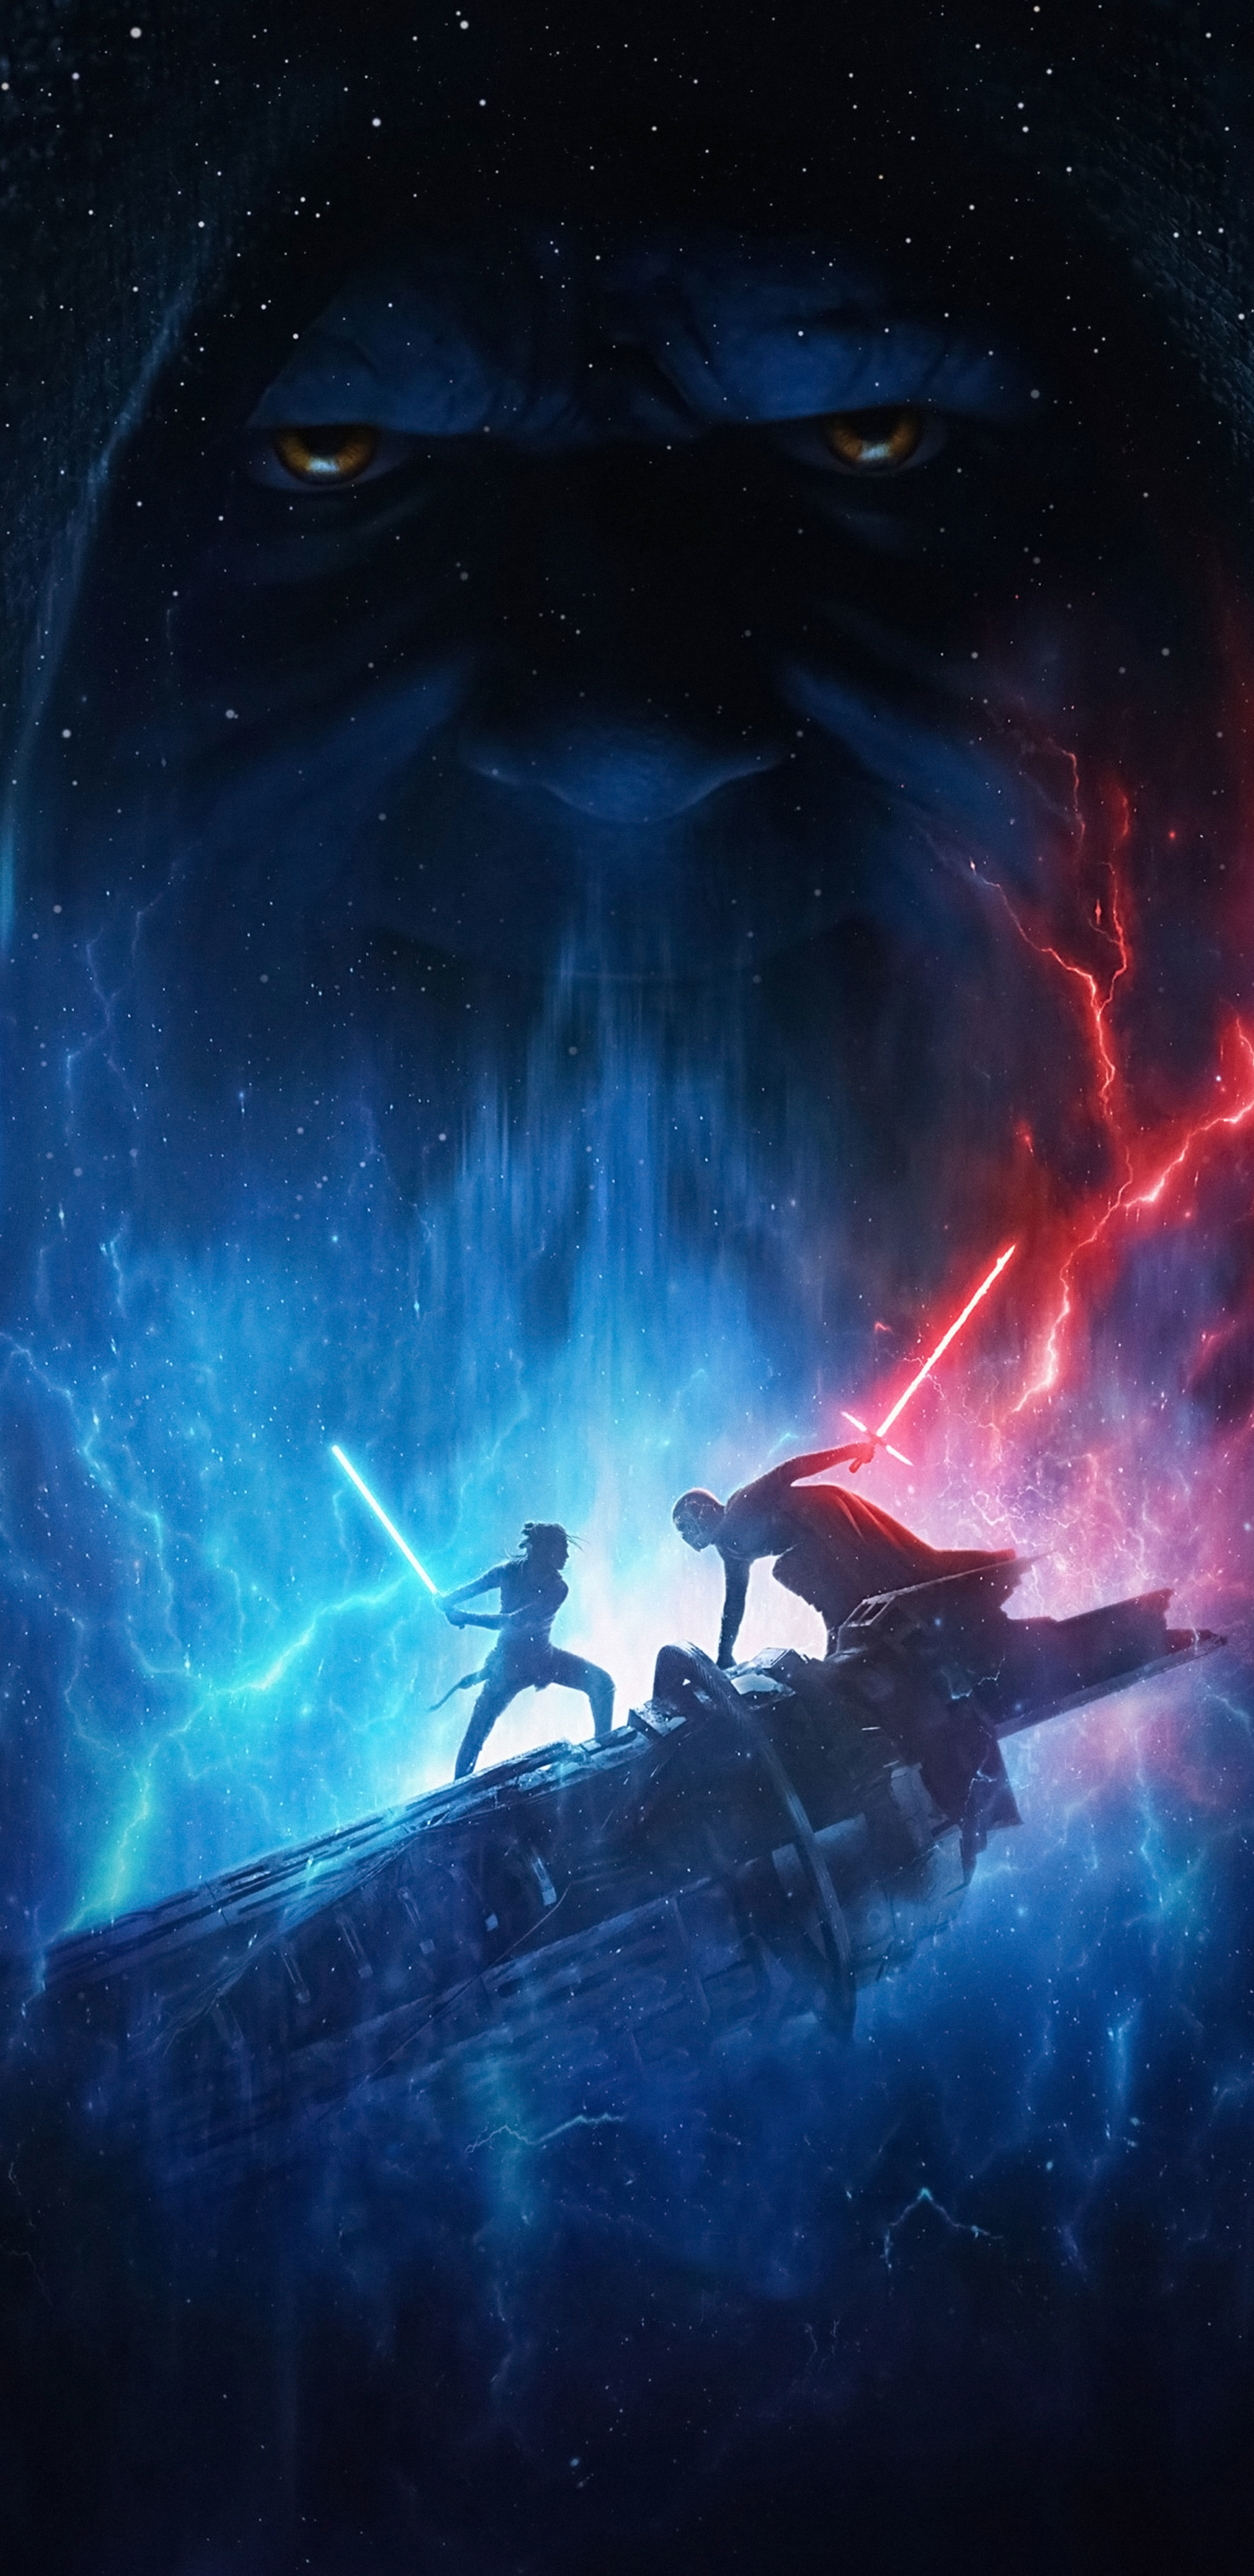 1440x2960 Star Wars The Rise Of Skywalker Samsung Galaxy Note 9 8 S9 S8 S8 Qhd Wallpaper Hd Movies 4k Wallpapers Images Photos And Background